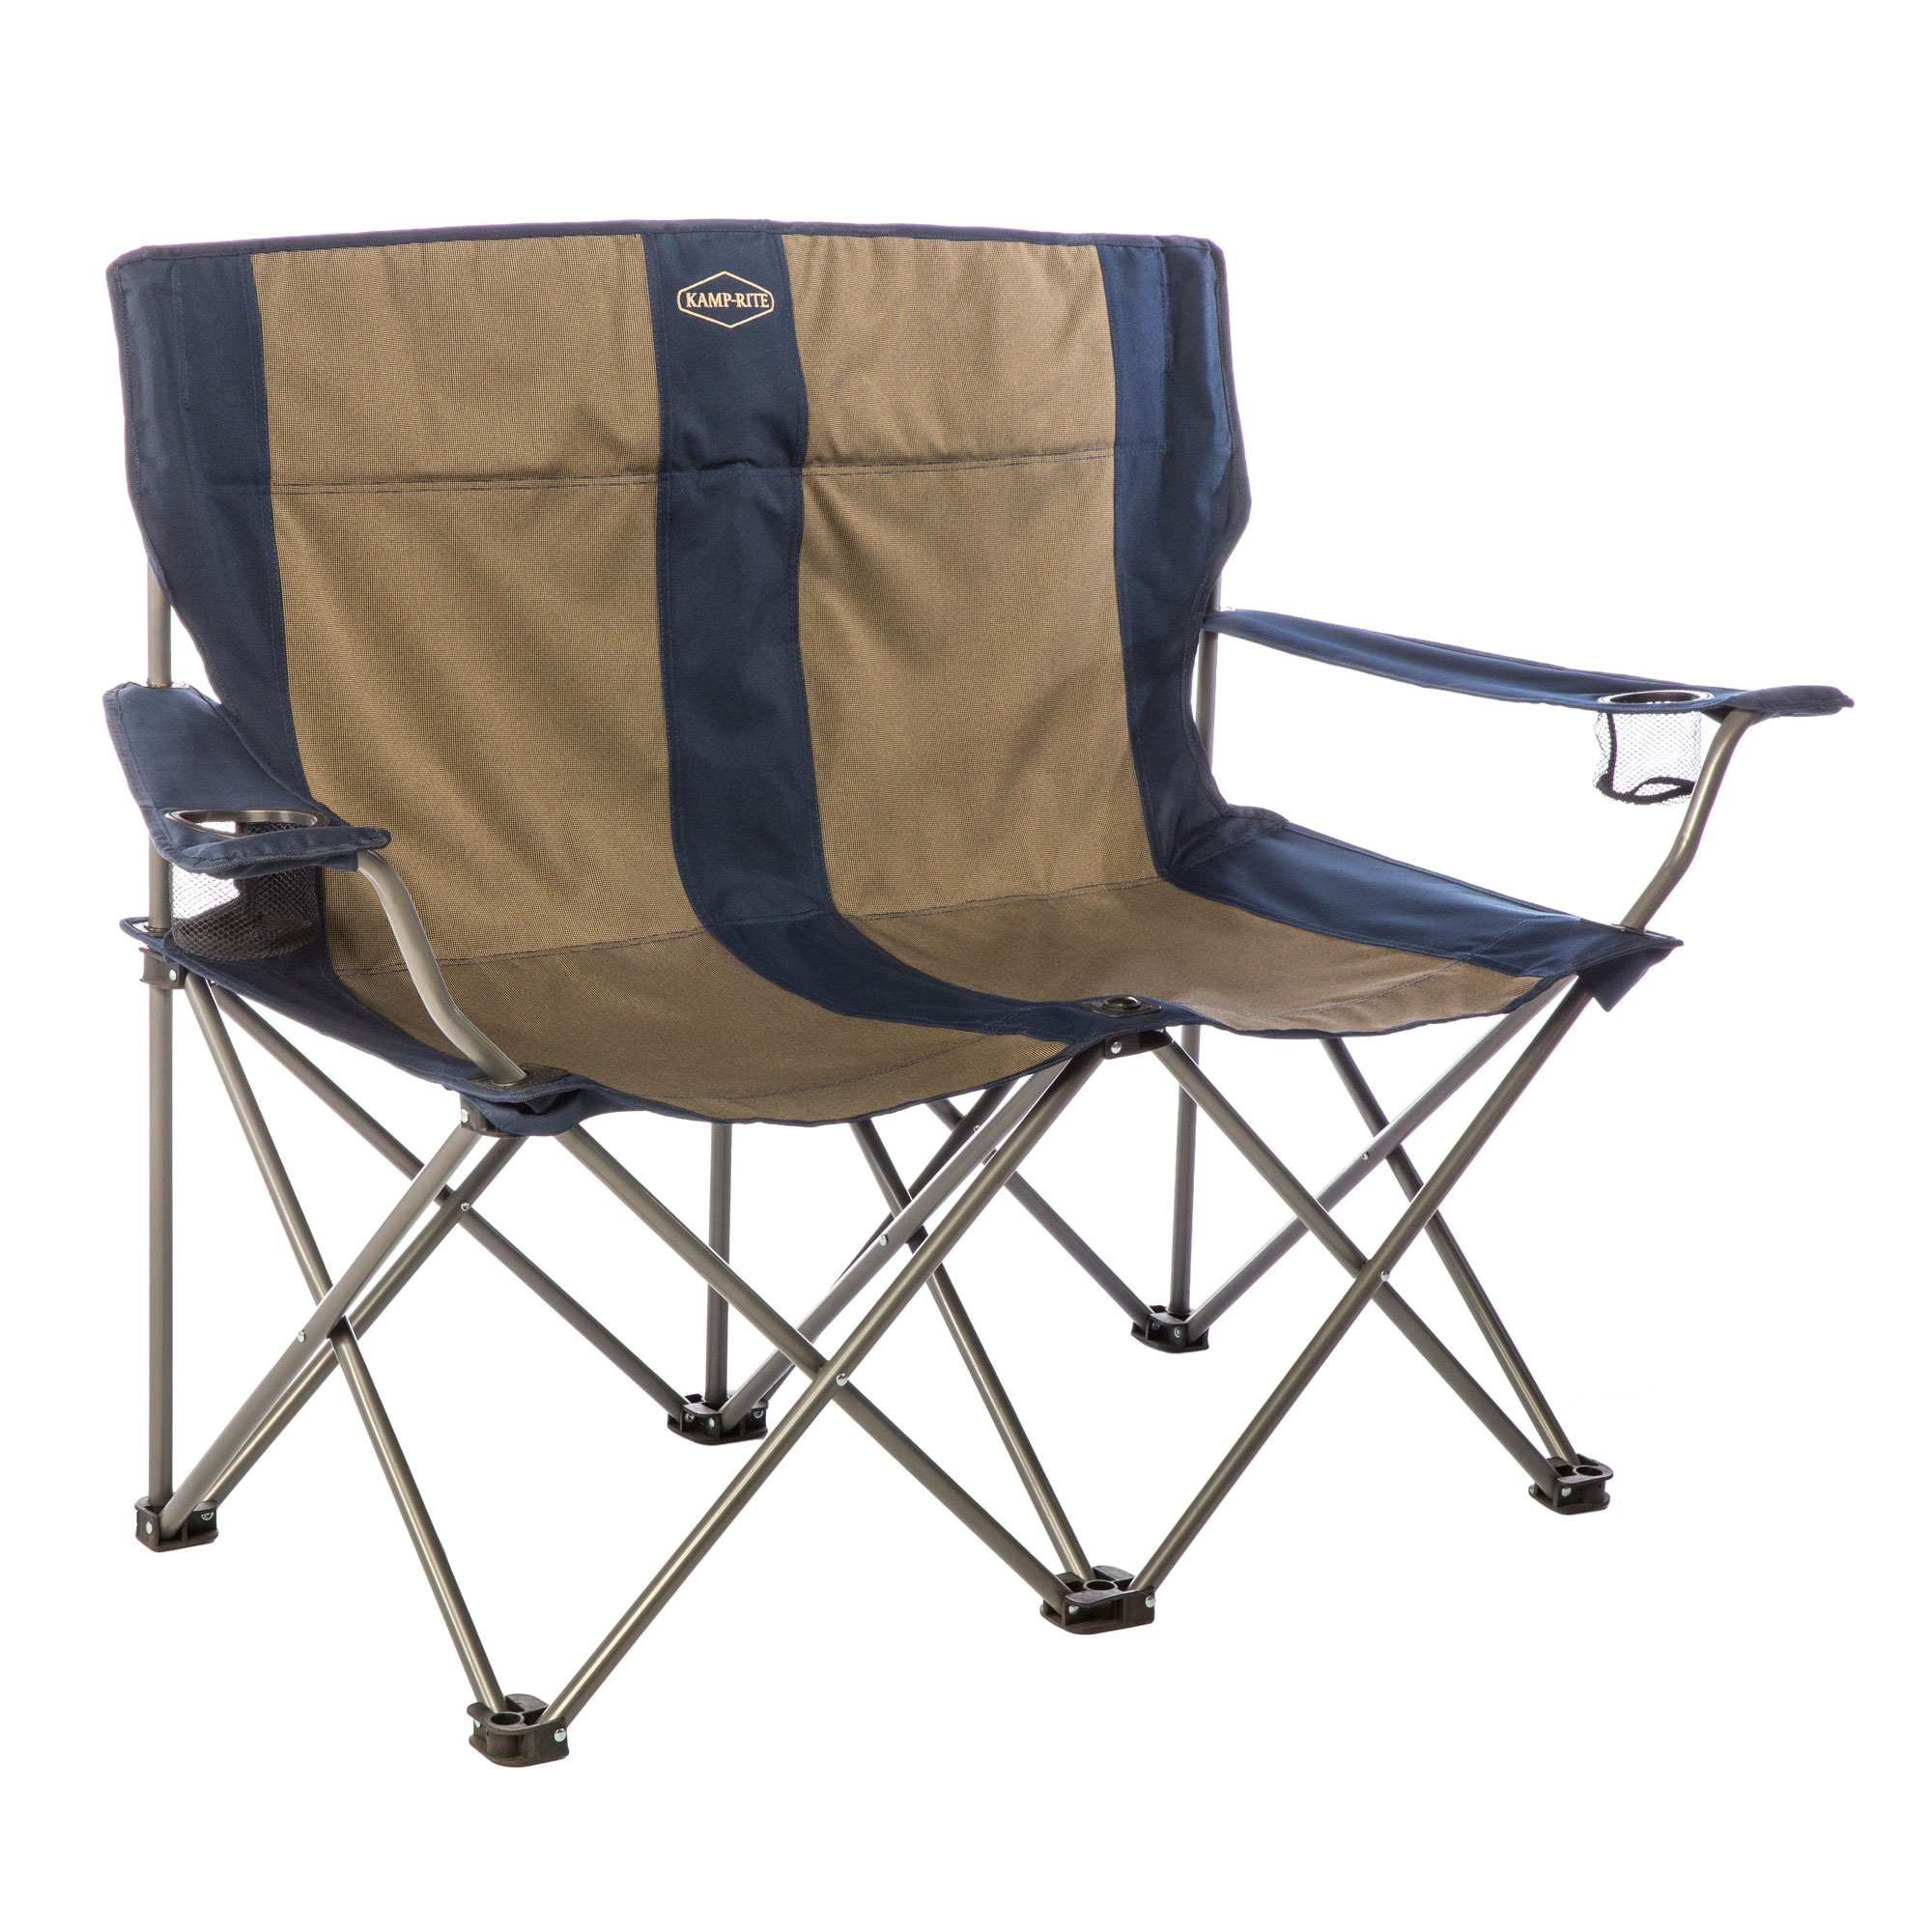 Details About Kamp Rite Cc352 2 Person Outdoor Tailgating Camping Double Folding Lawn Chair